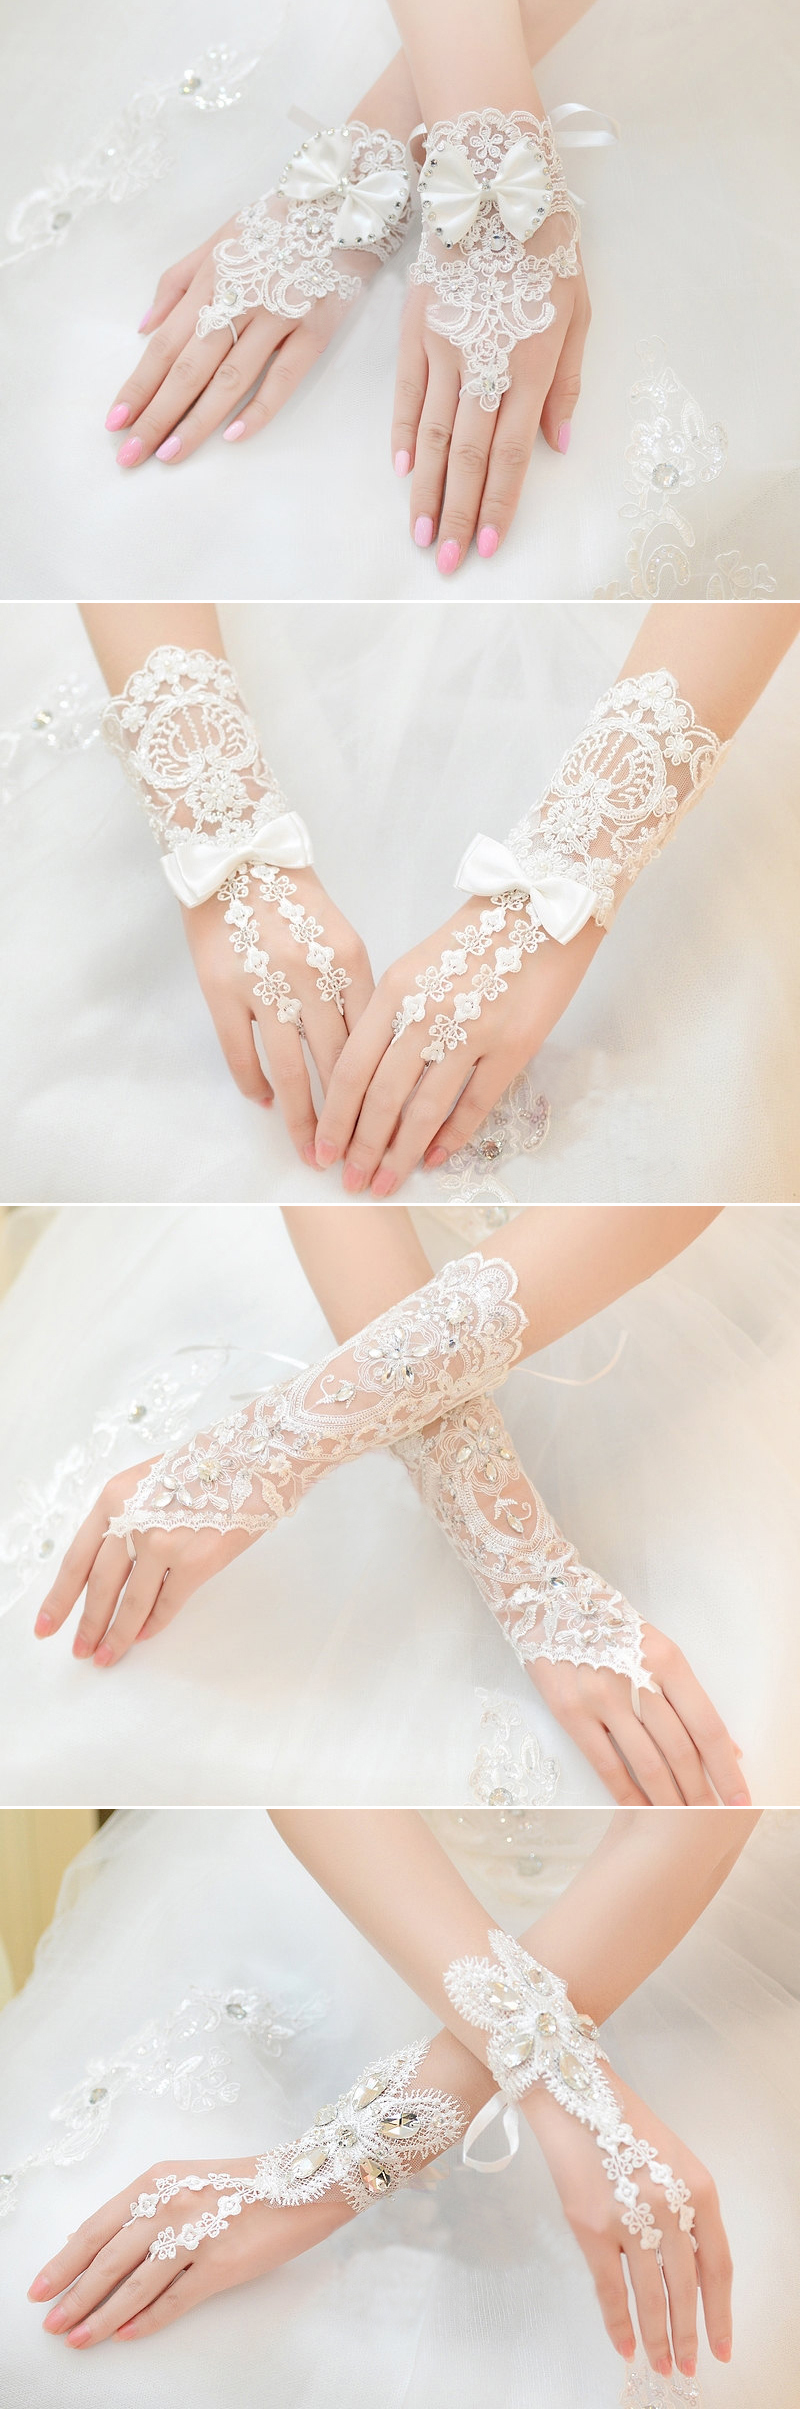 laceaccessories01-gloves